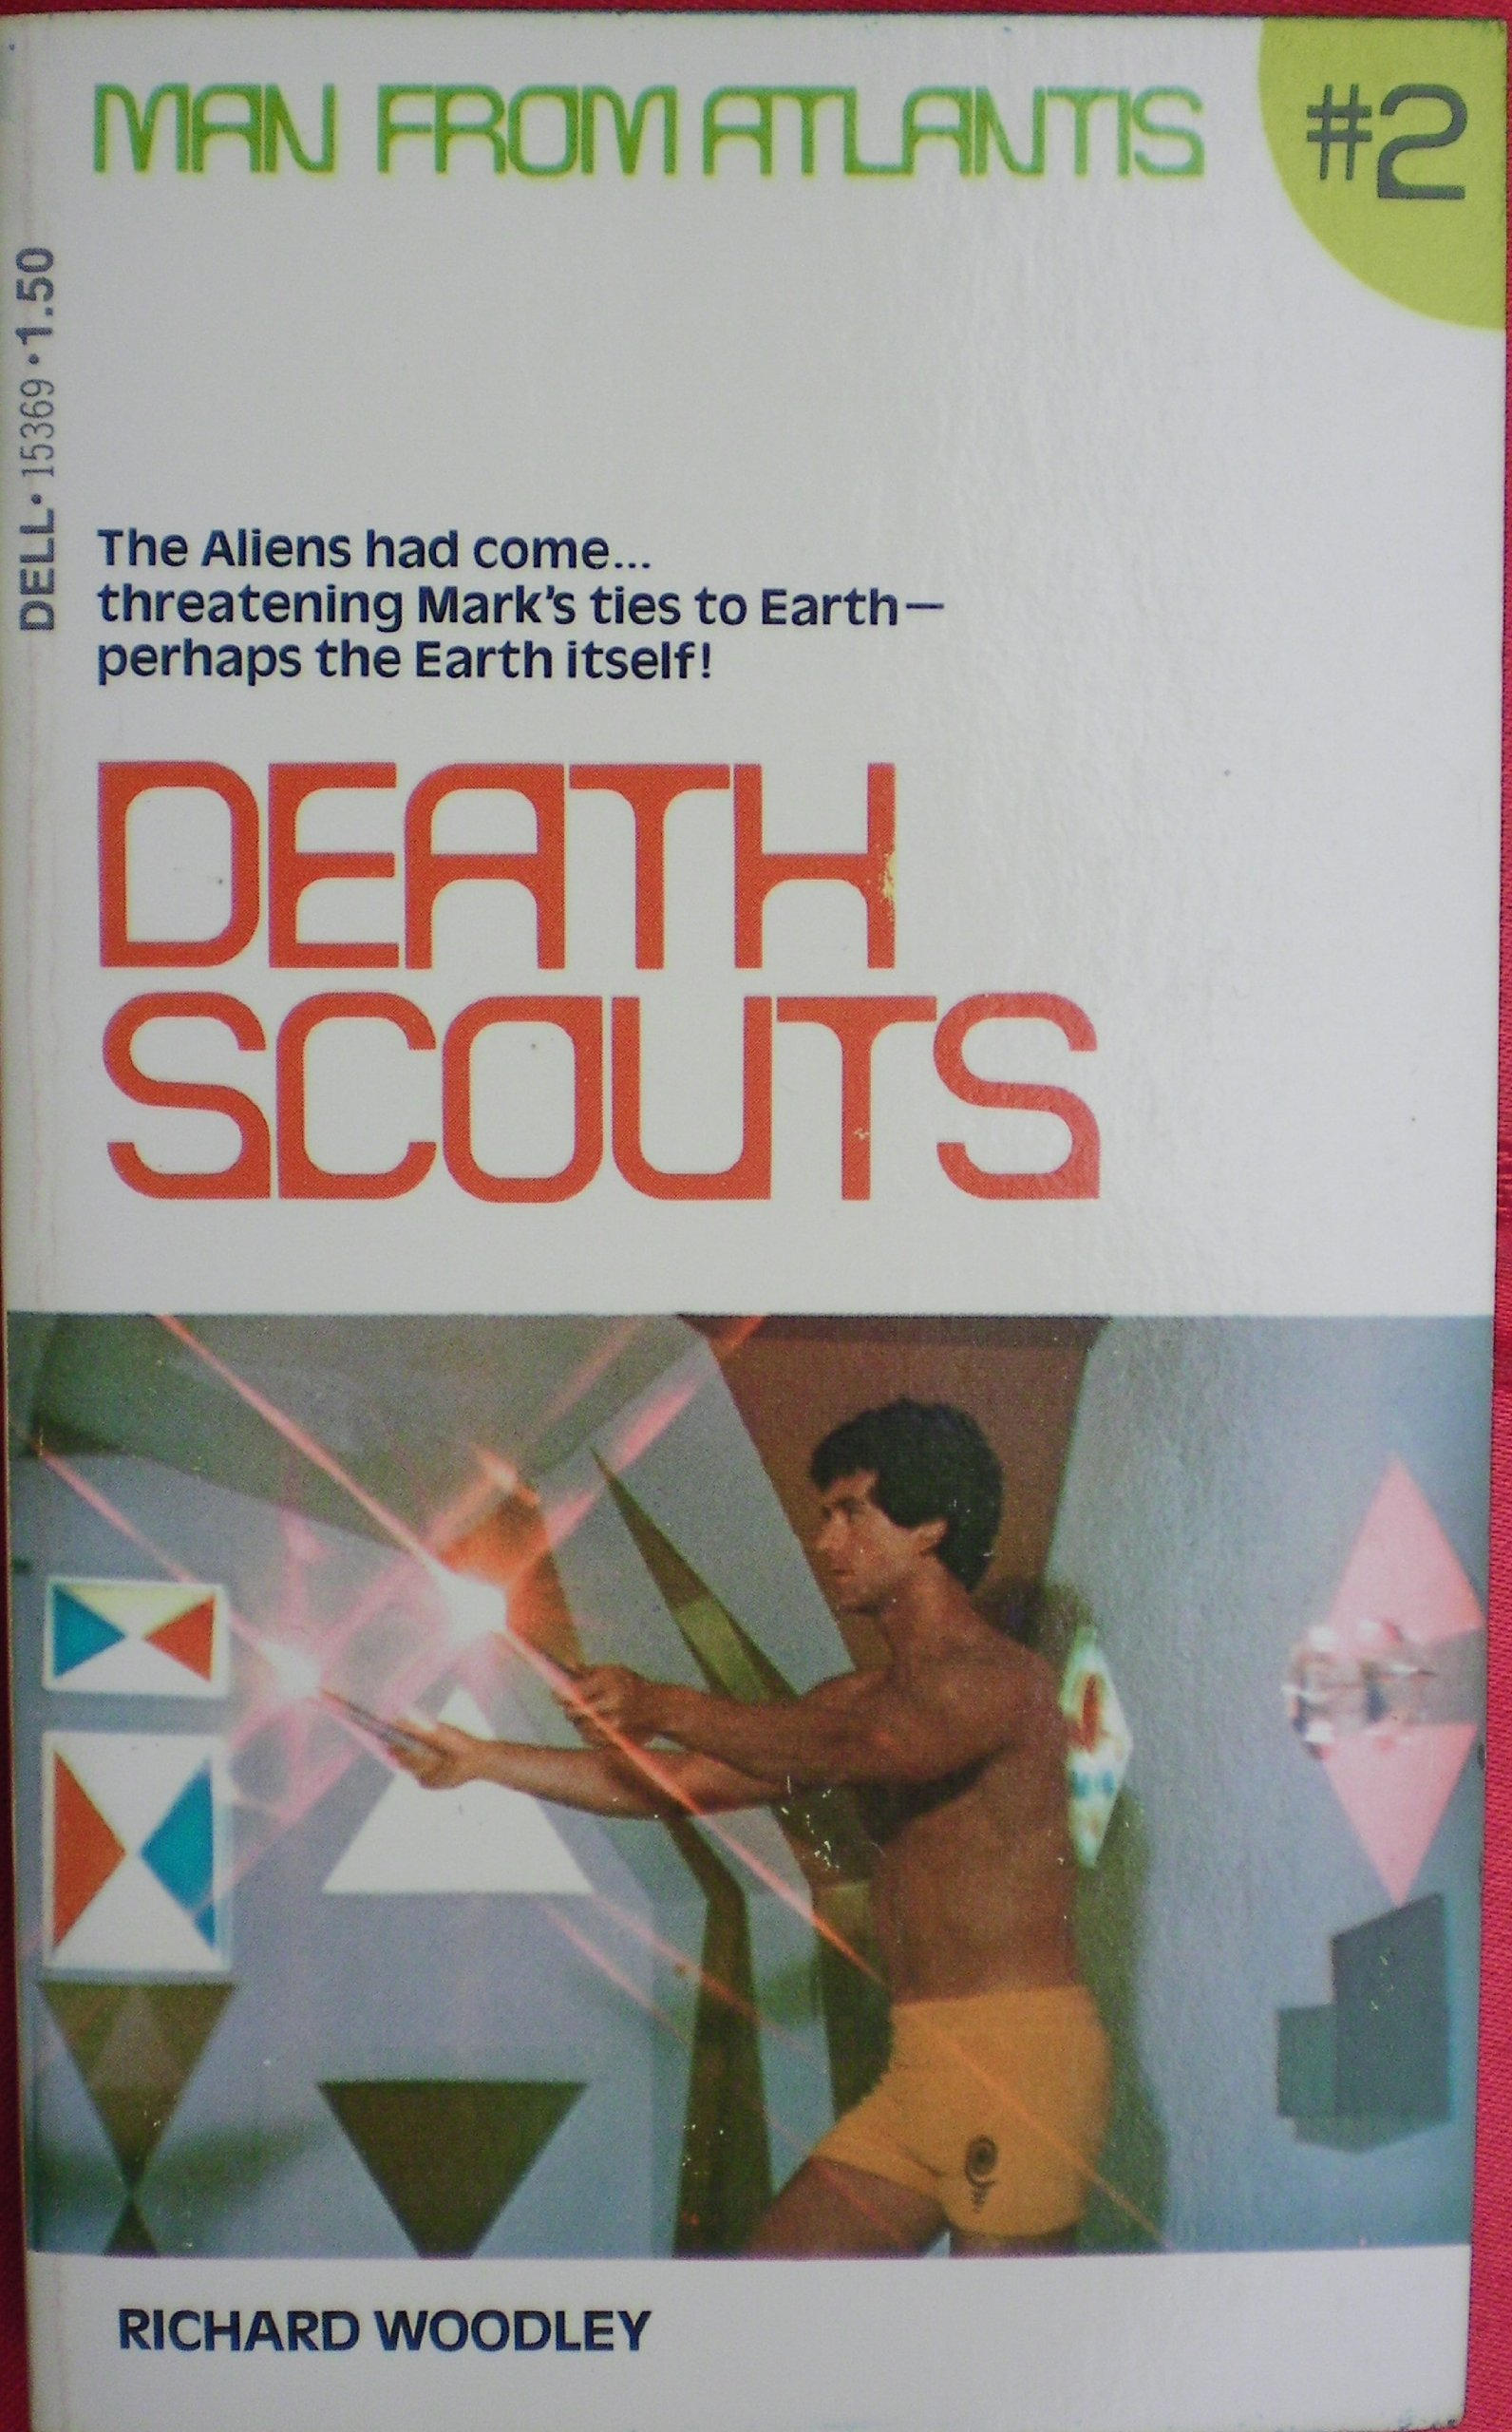 DEATH SCOUTS (MAN FROM ATLANTIS #2)  by  Richard Woodley